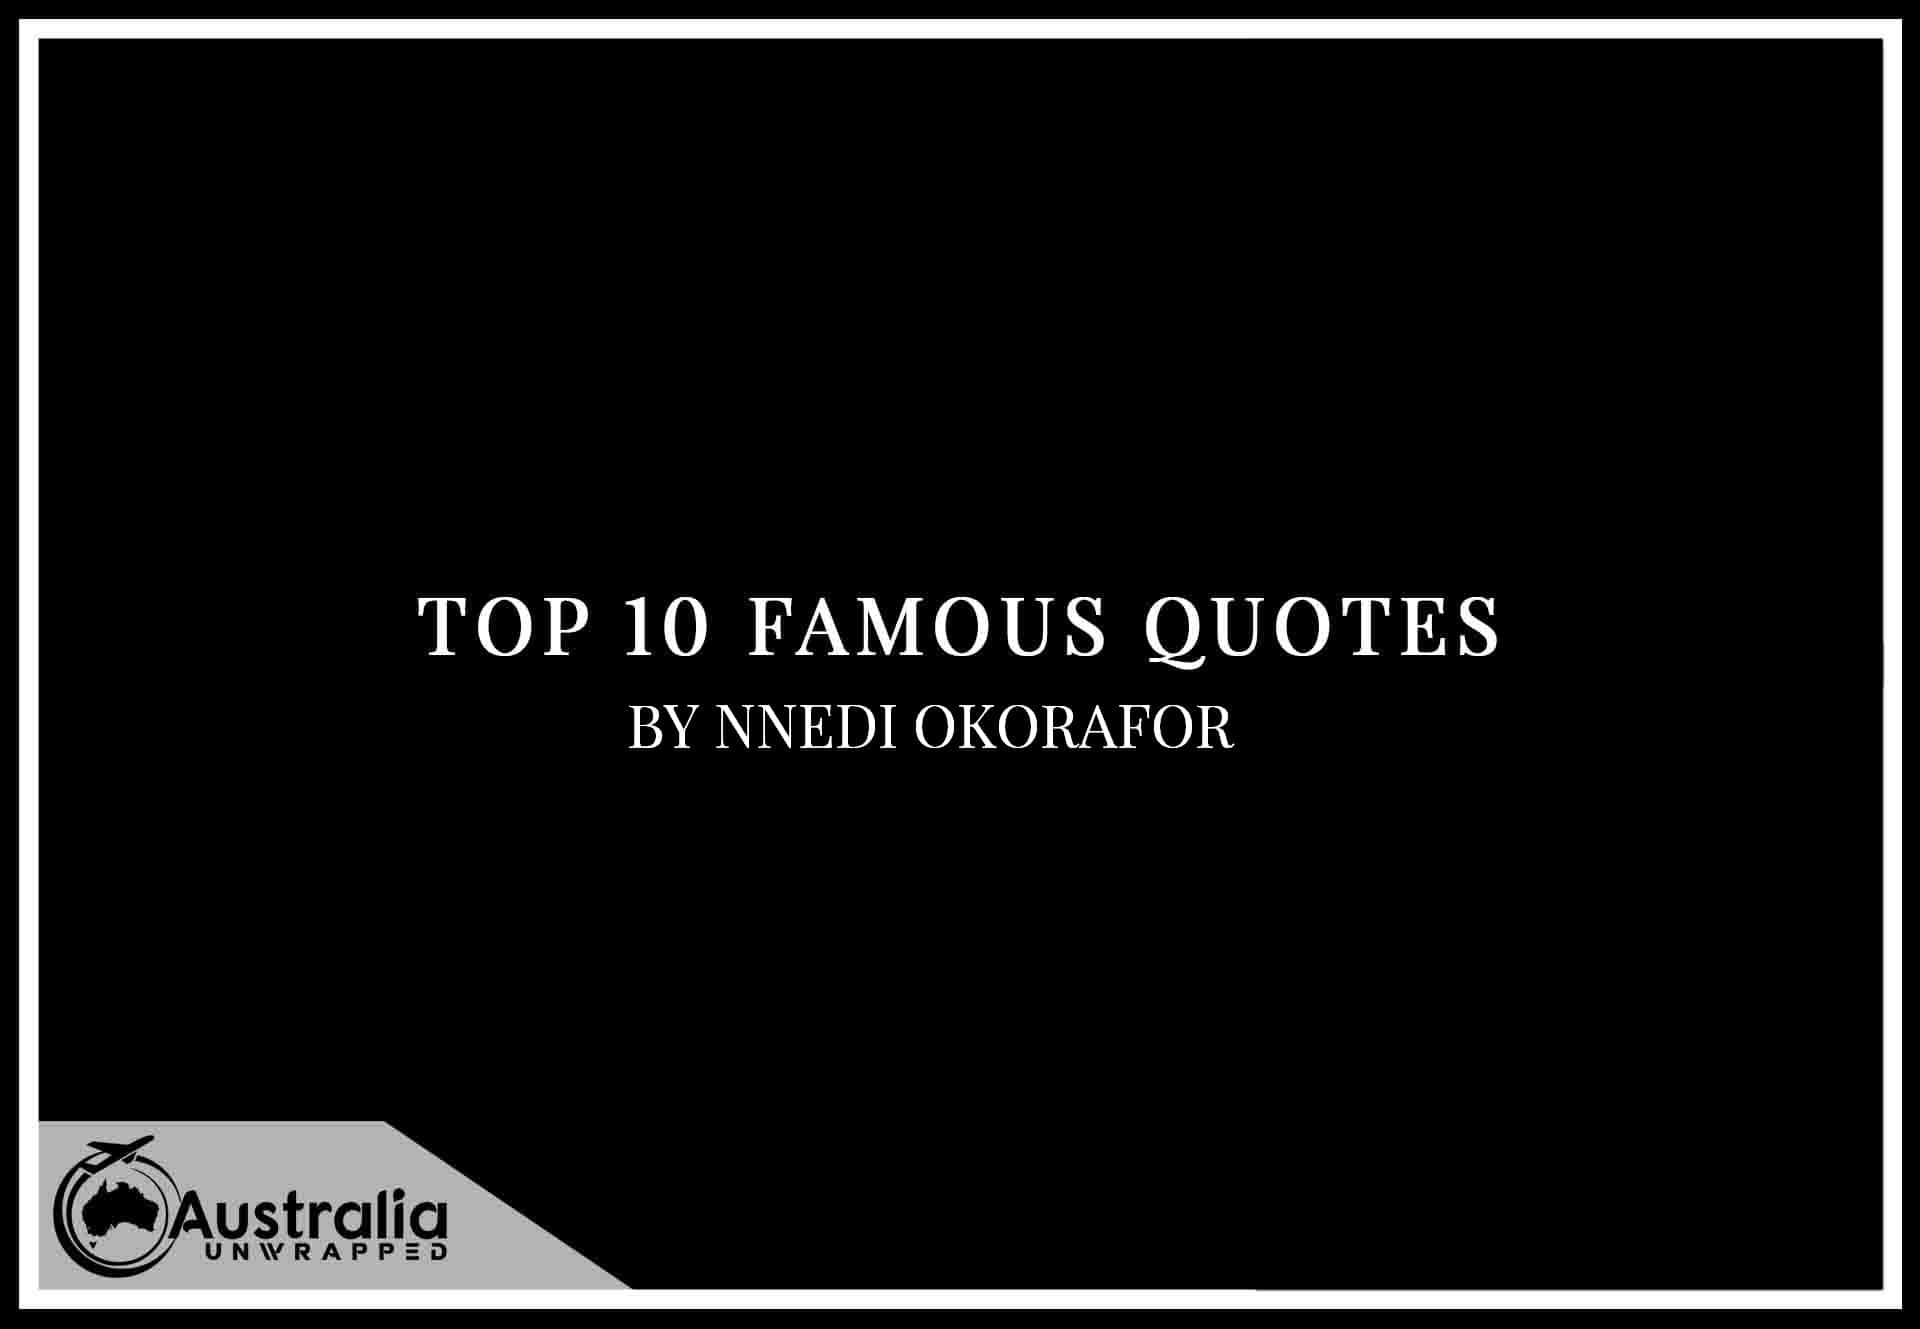 Top 10 Famous Quotes by Author Nnedi Okorafor